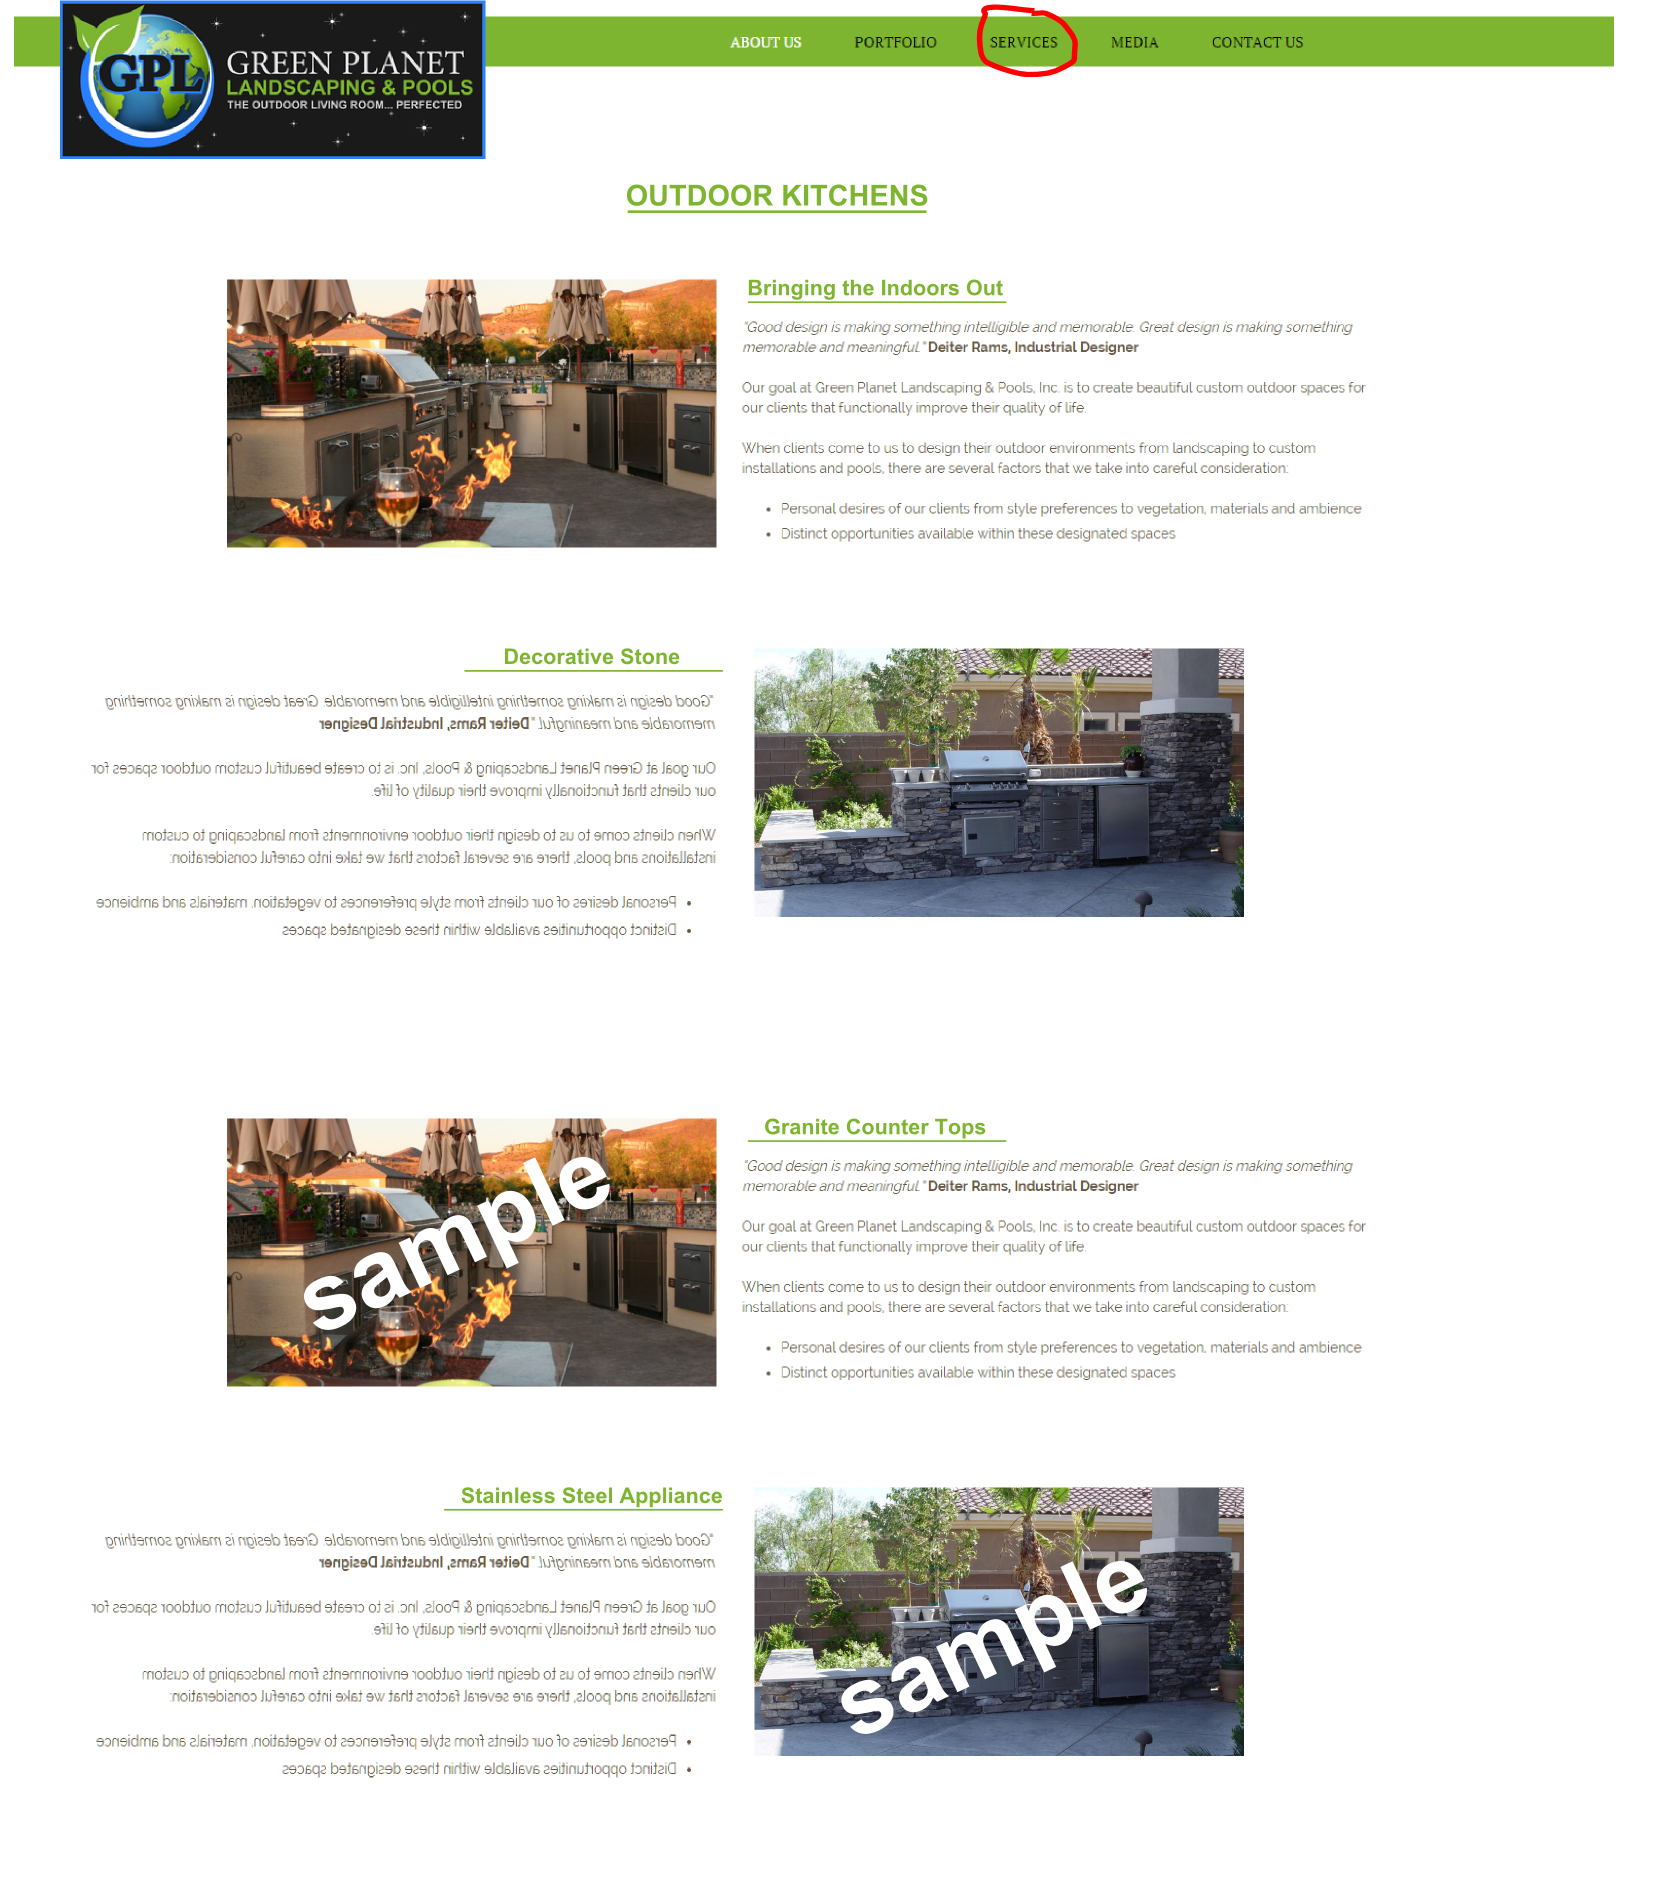 outdoor kitchens page mockup